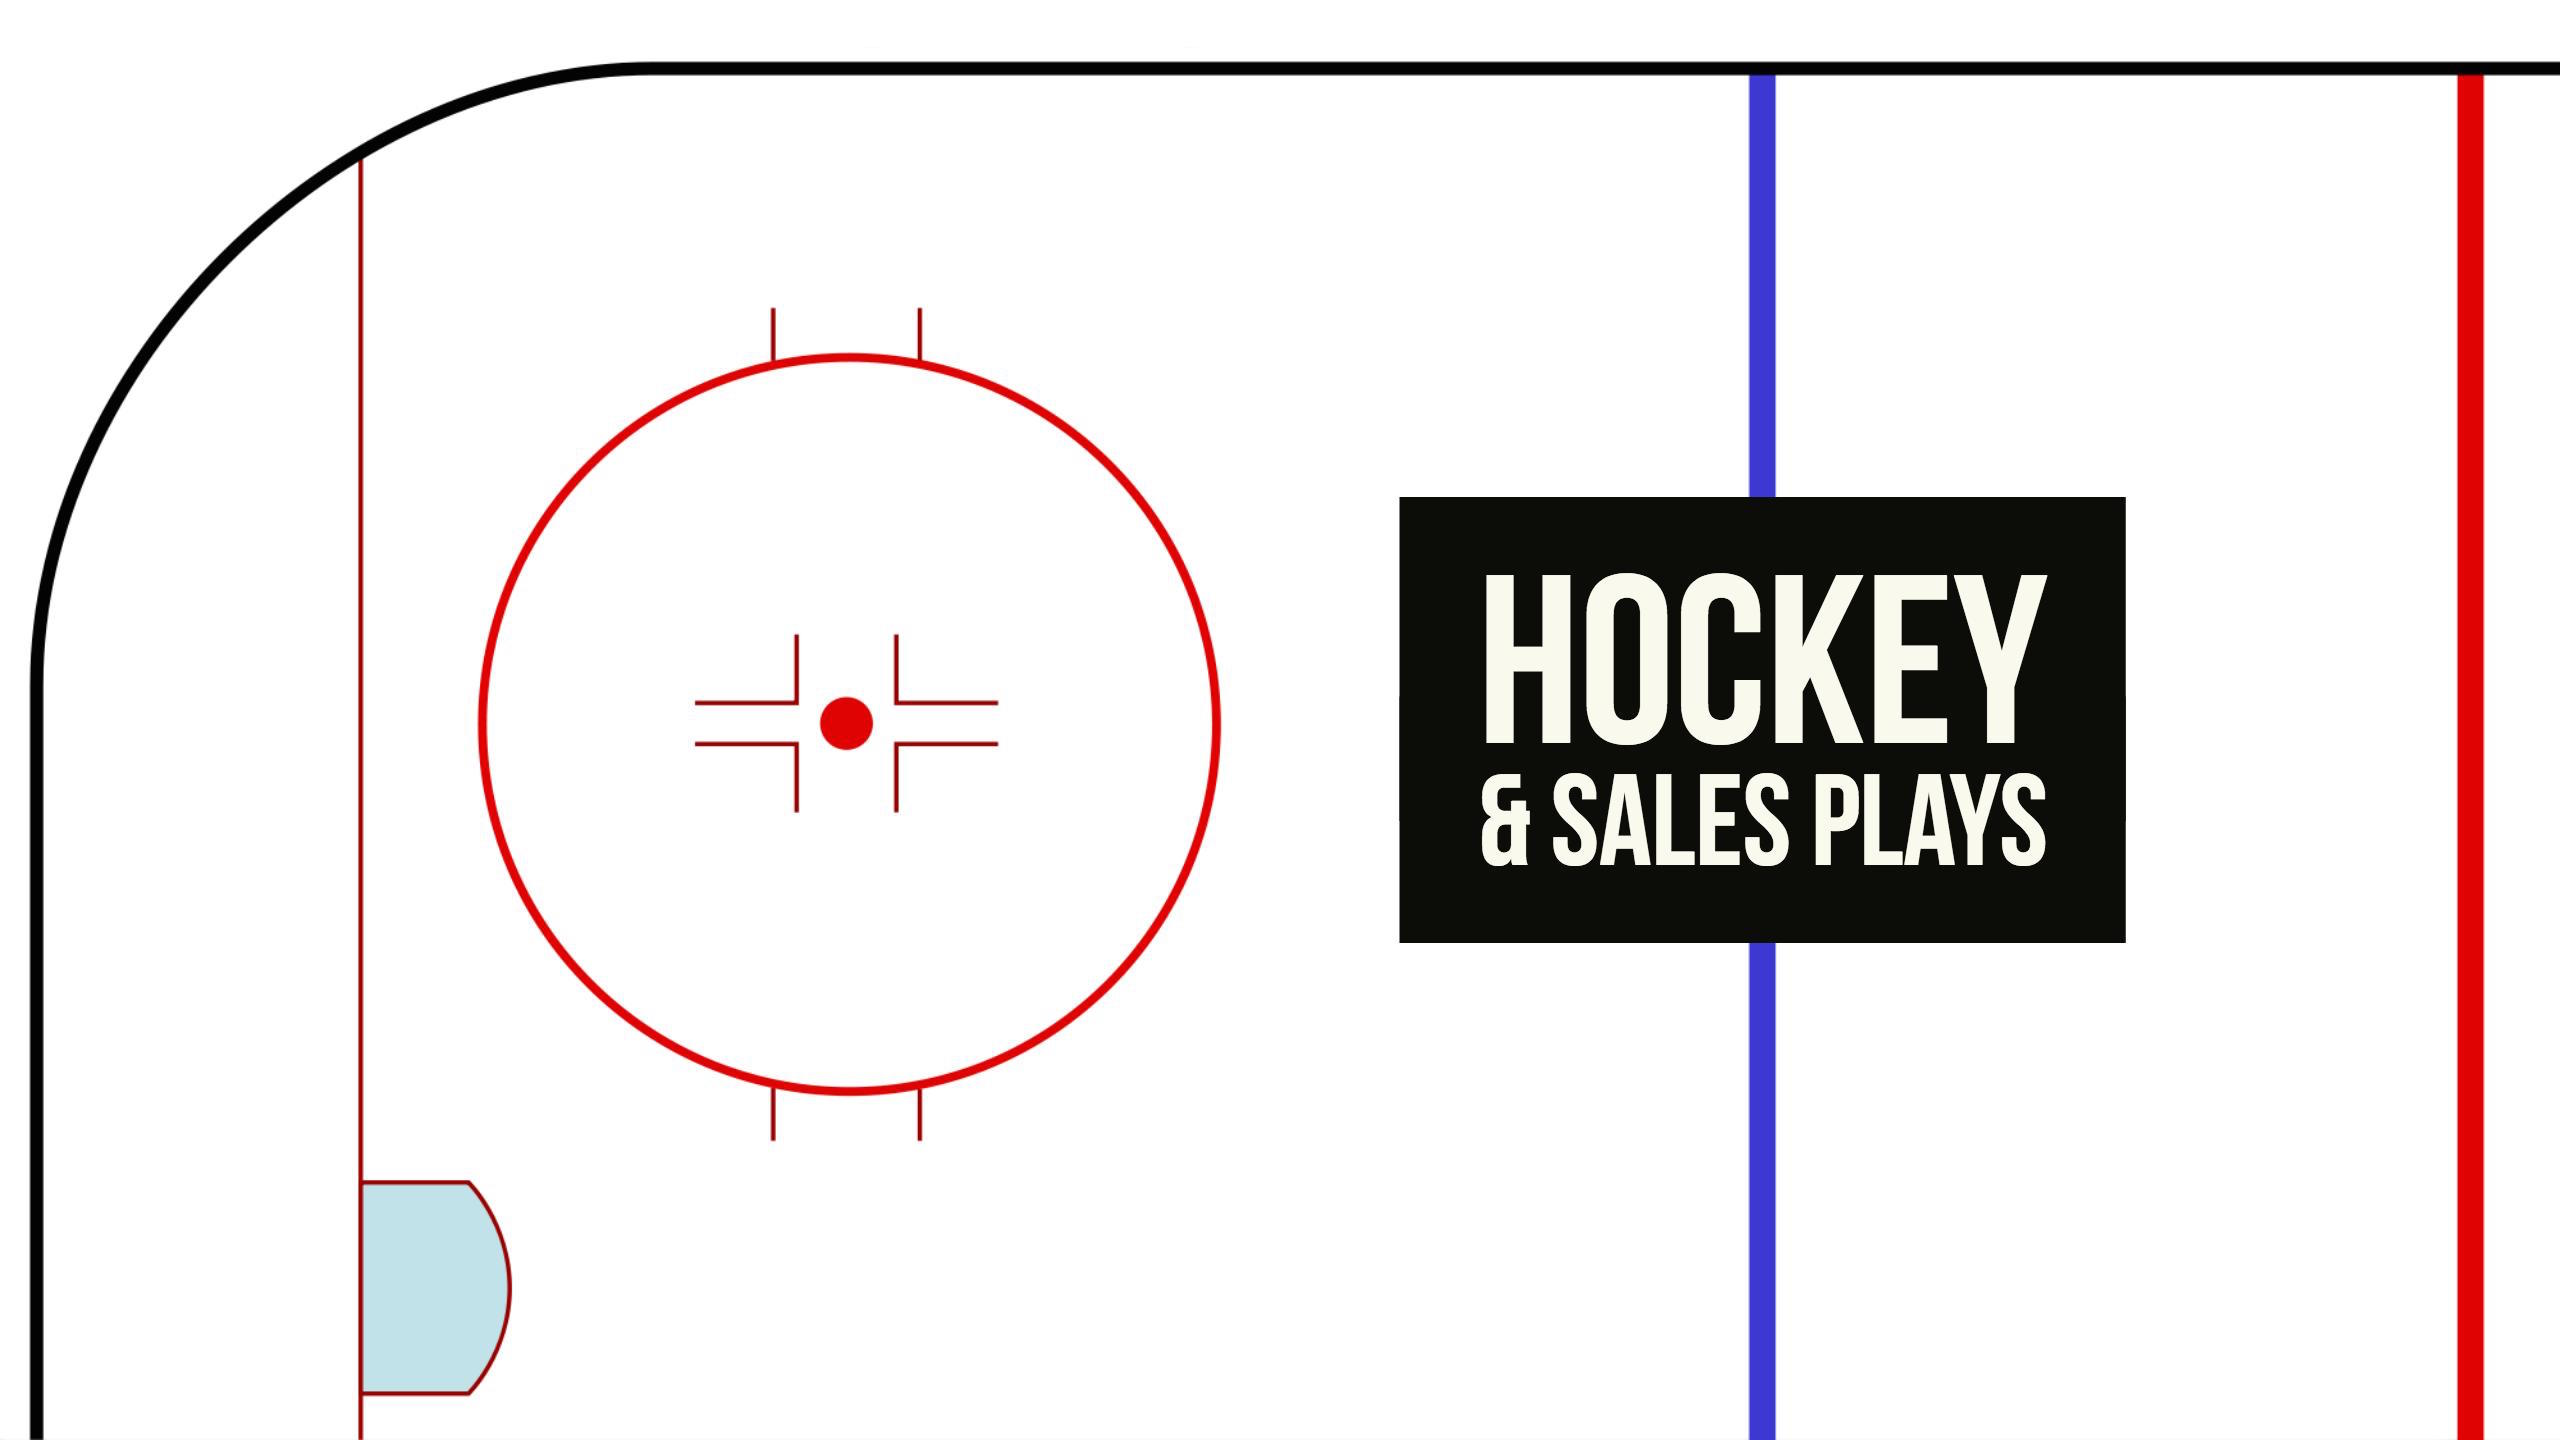 hockey and sales plays